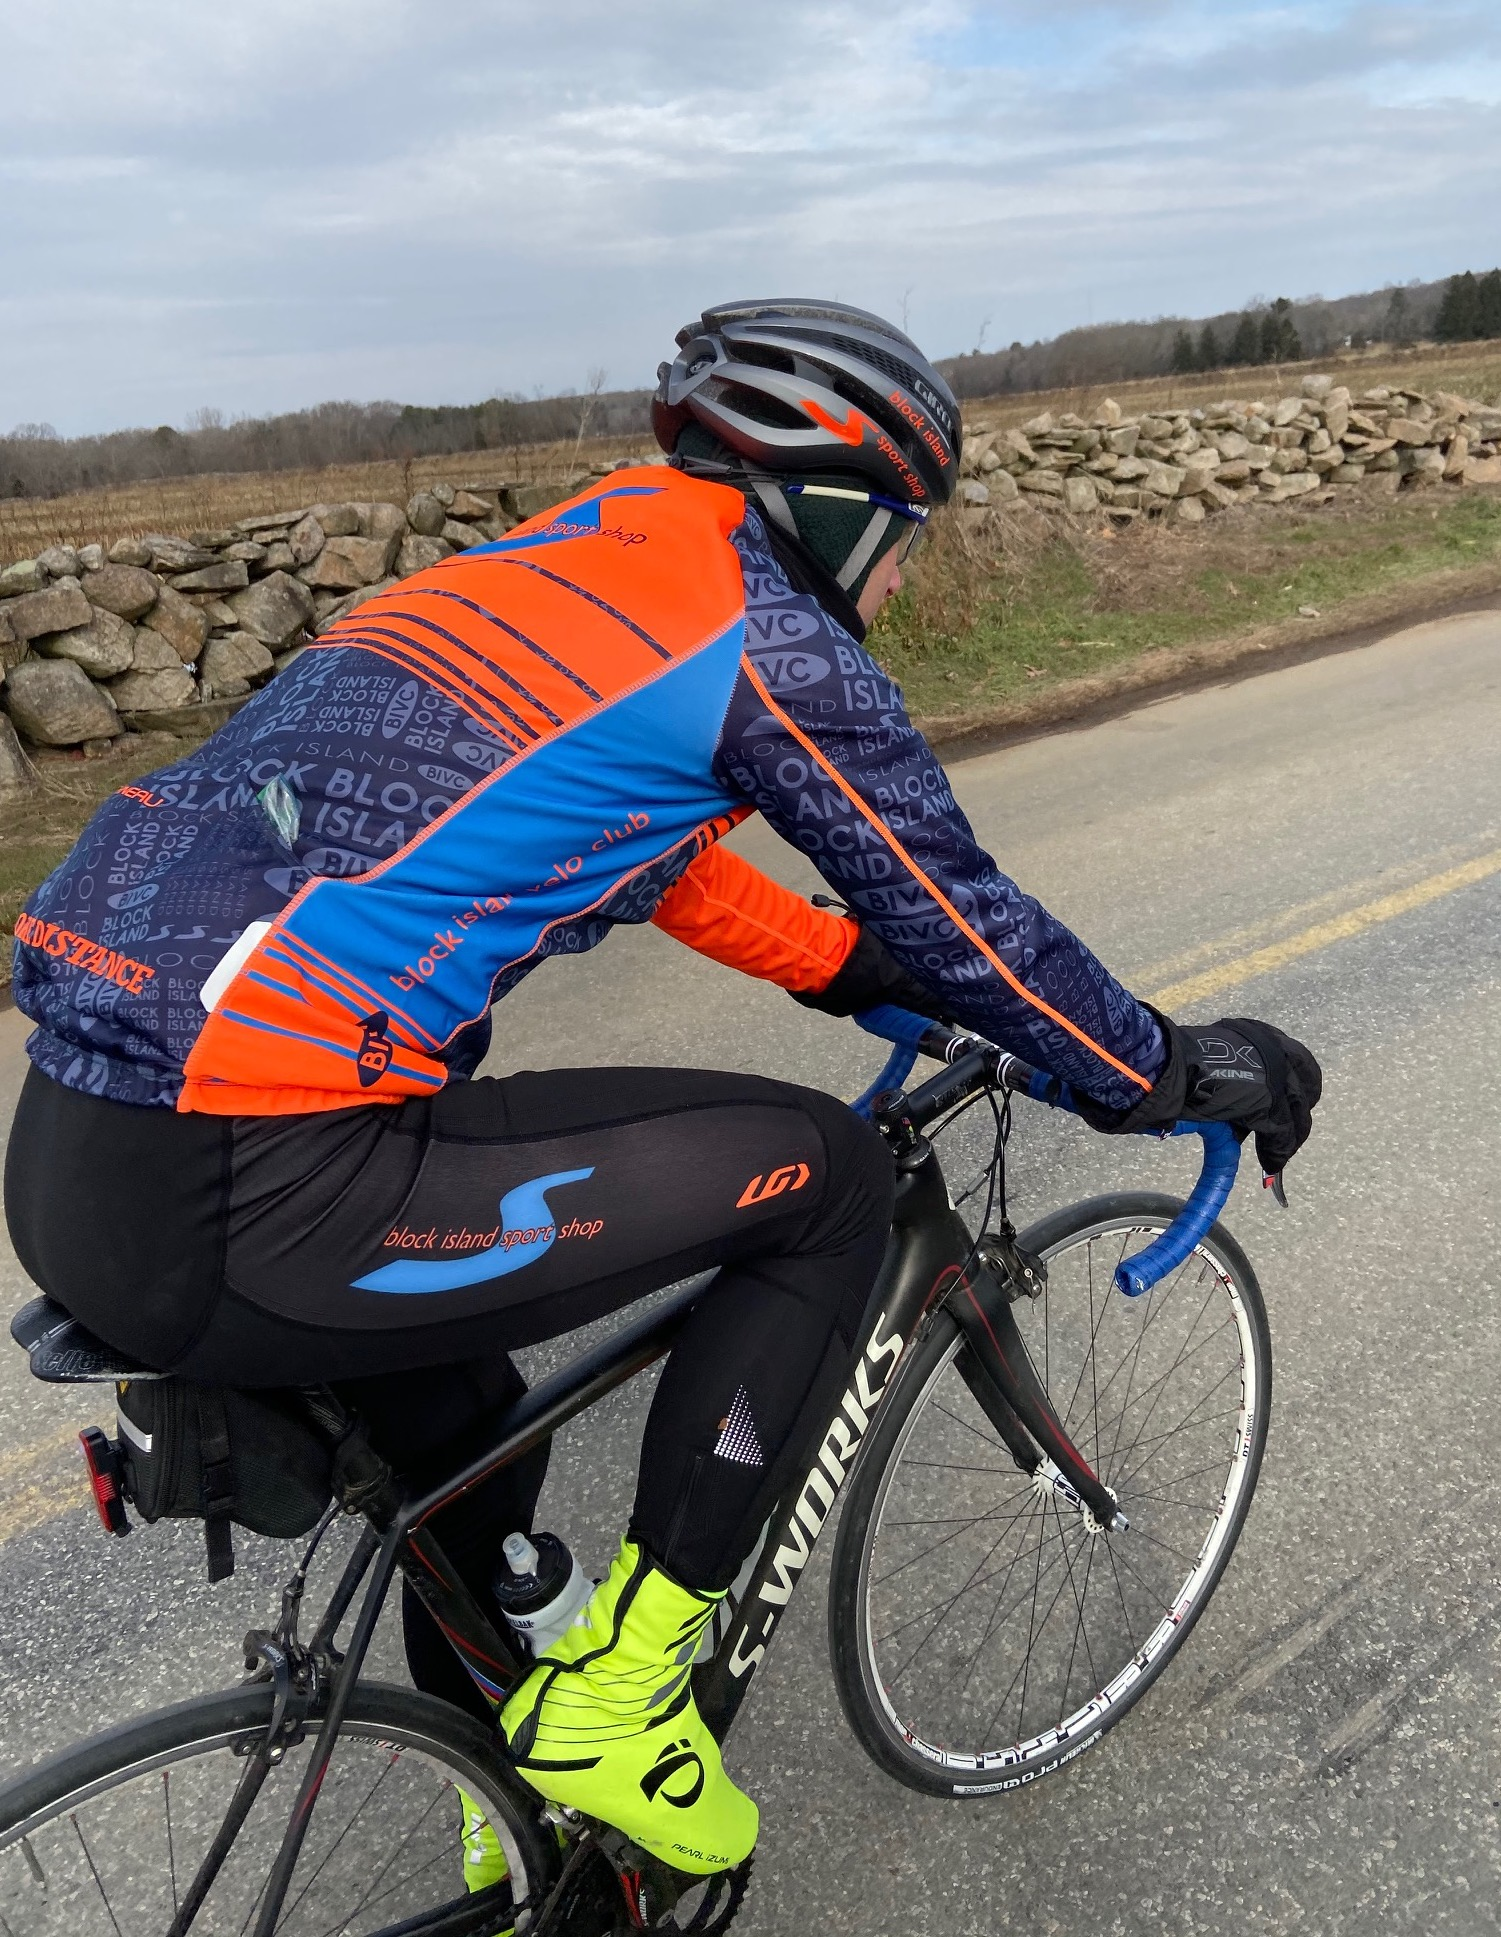 cyclist wearing blue and orange kit rides on a paved road alongside stonewall